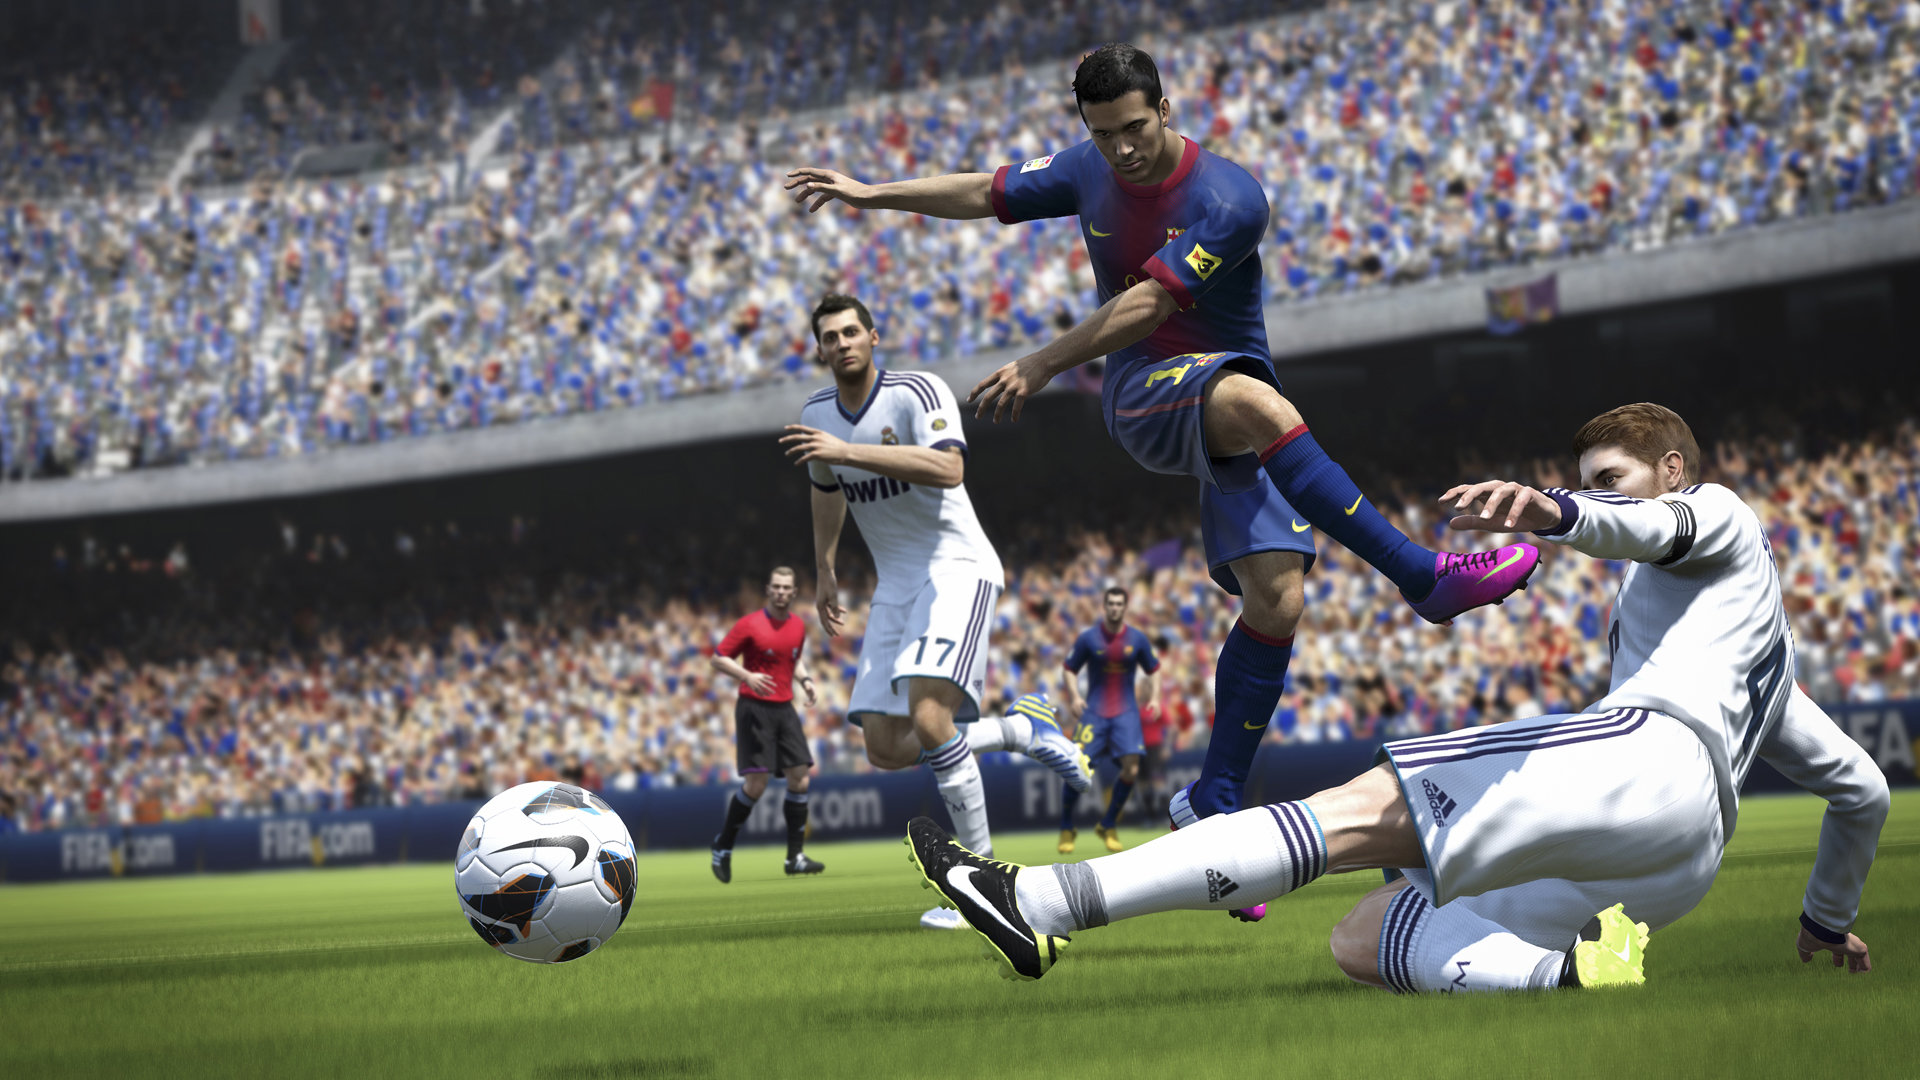 Fifa 14 wallpapers 1920x1080 full hd 1080p desktop backgrounds high resolution fifa 14 full hd wallpaper id293531 for computer 1920x1080 voltagebd Image collections